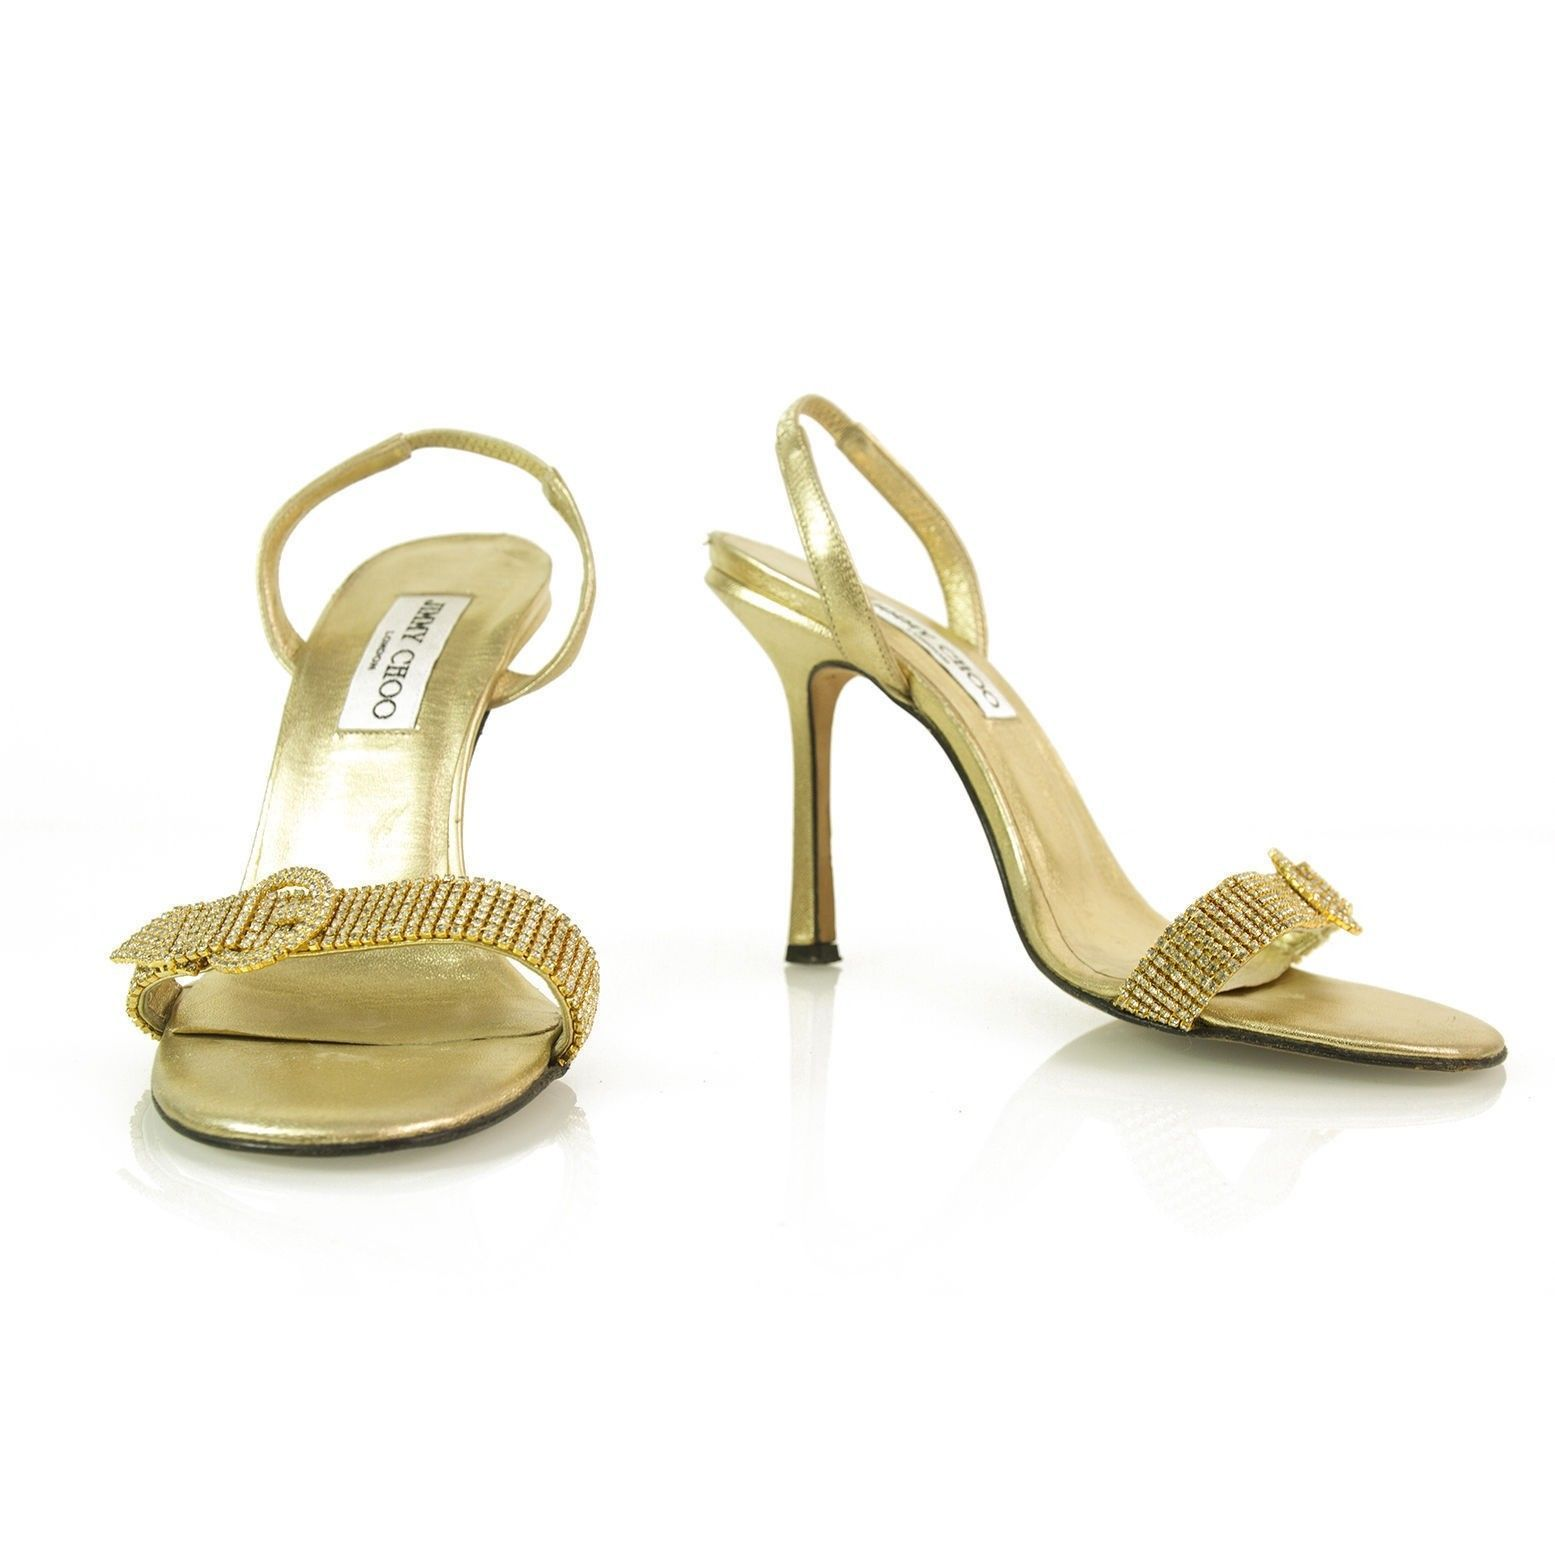 Authentic Jimmy Choo Gold w/ Crystals & Buckle Slingback Leather Sandals -Sz37.5